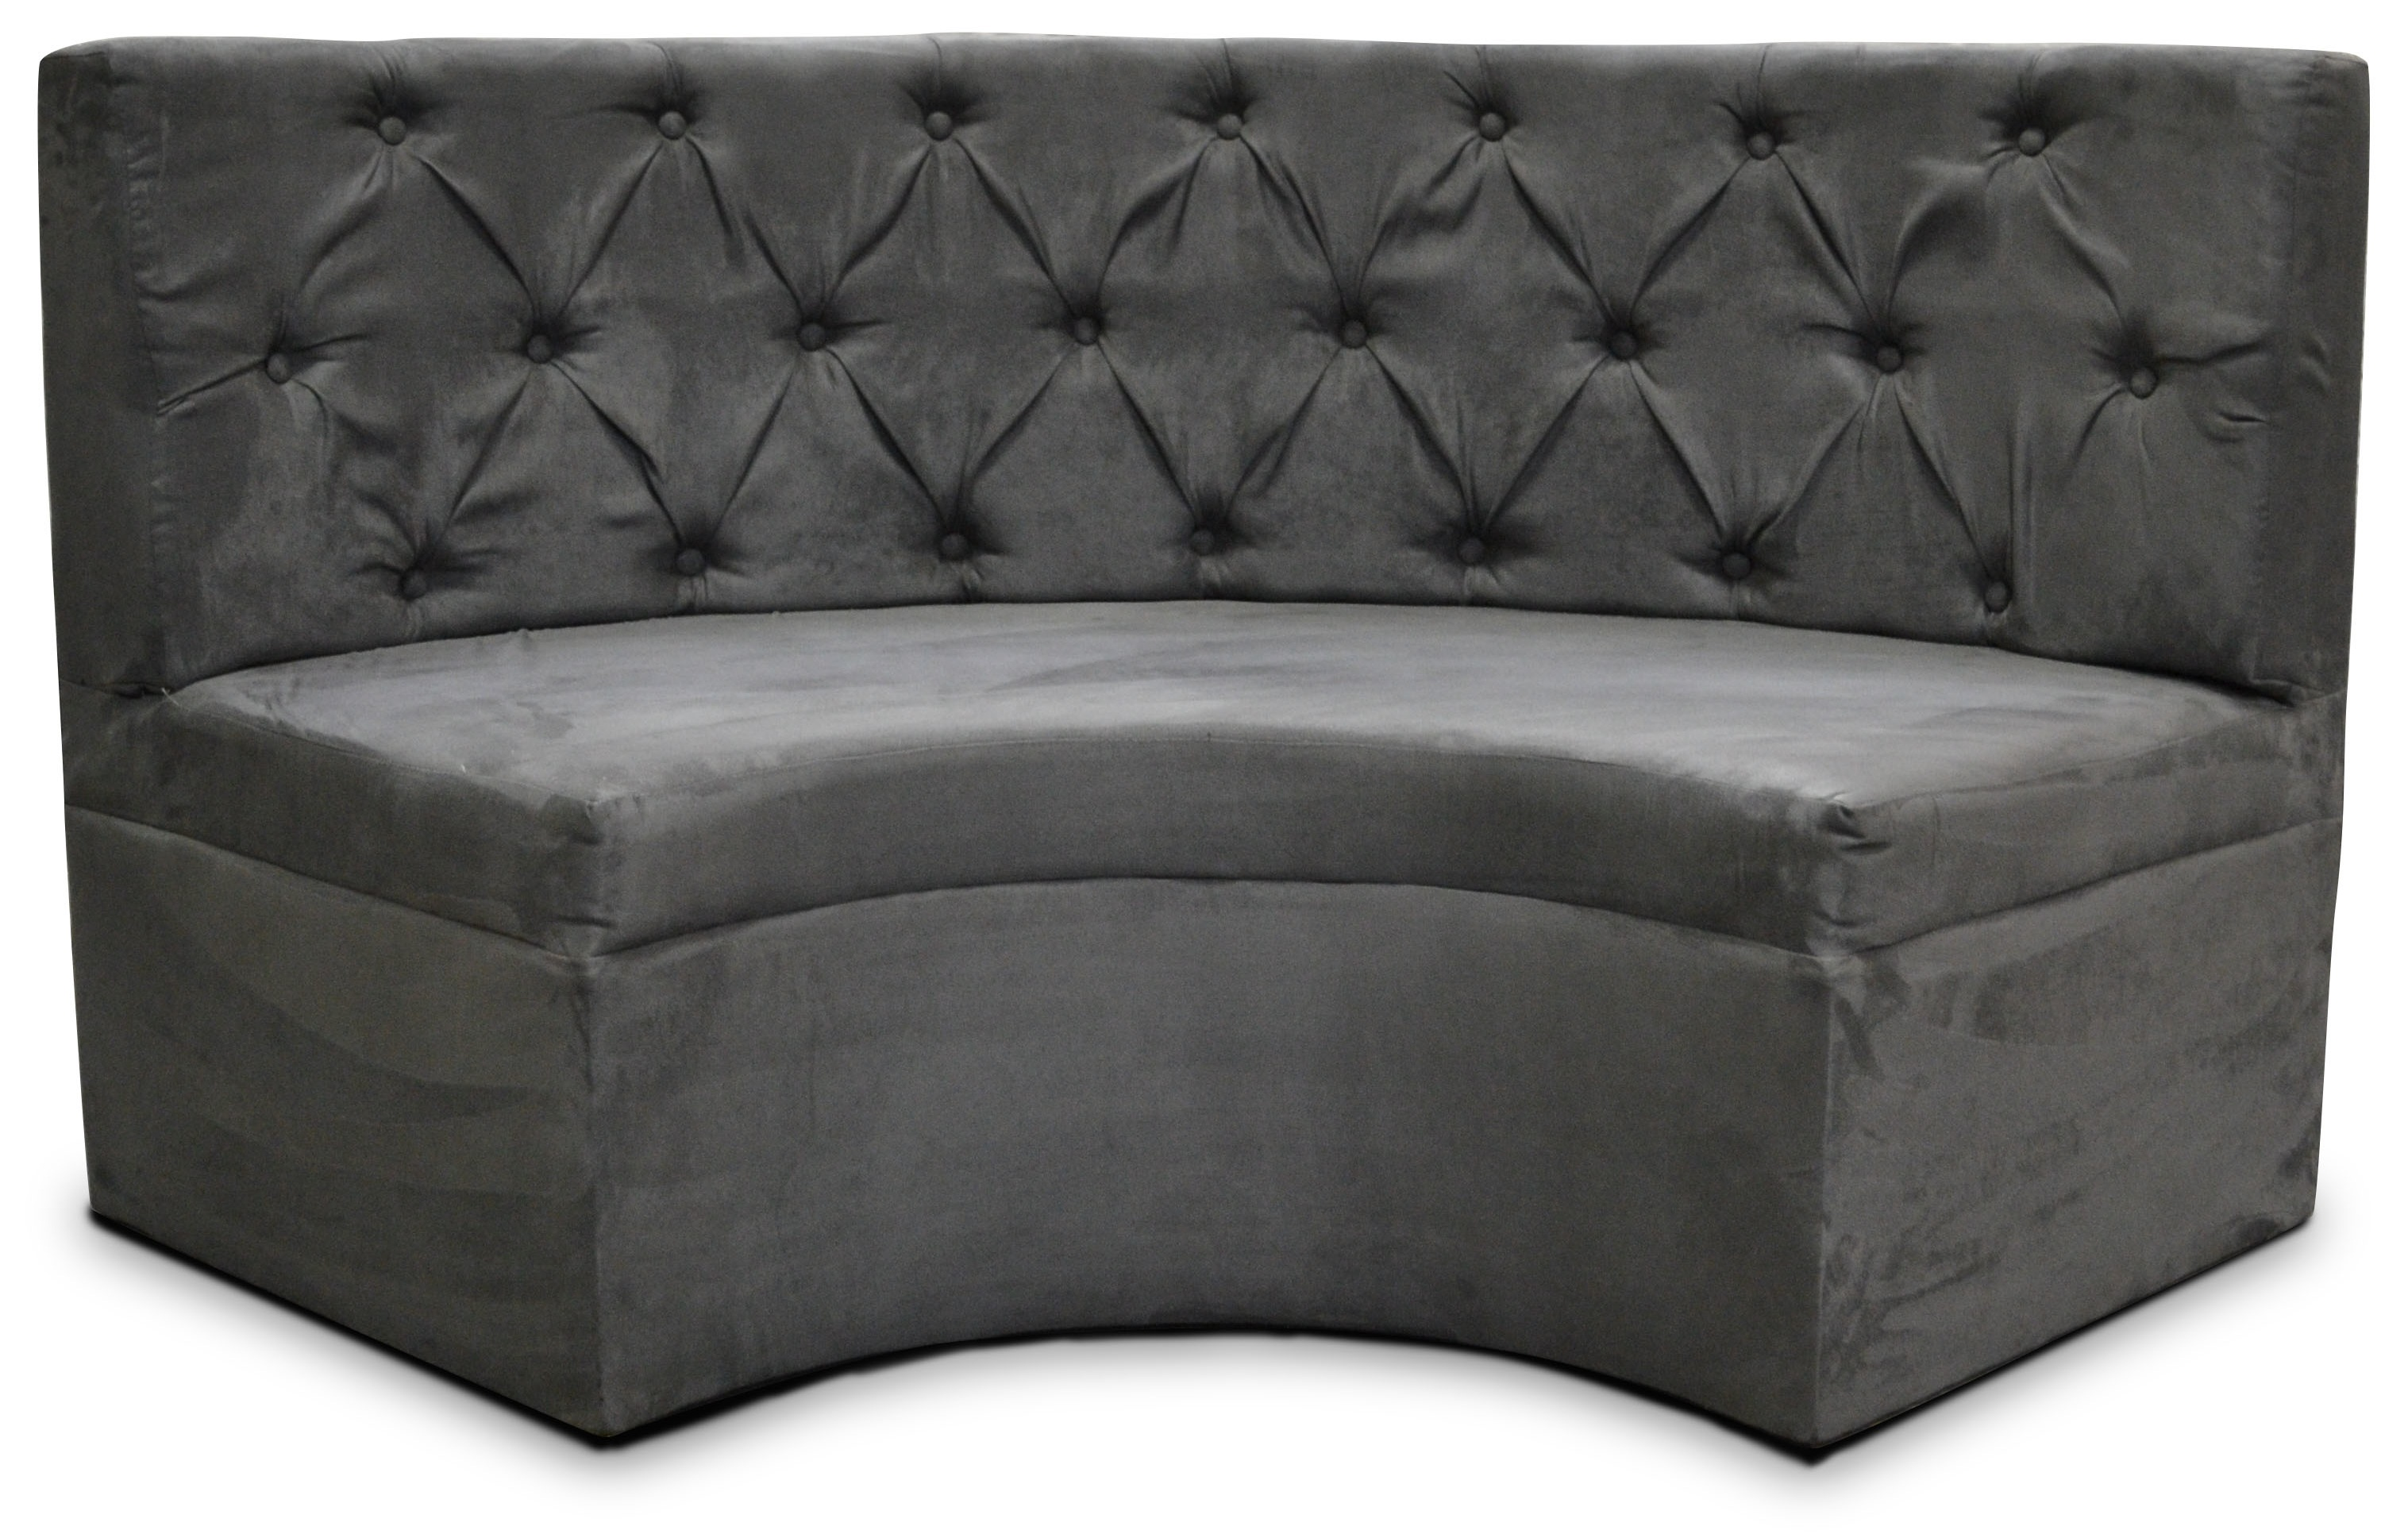 curved tufted sofa wooden set designs with pictures 5 39 booth charcoal suede designer8